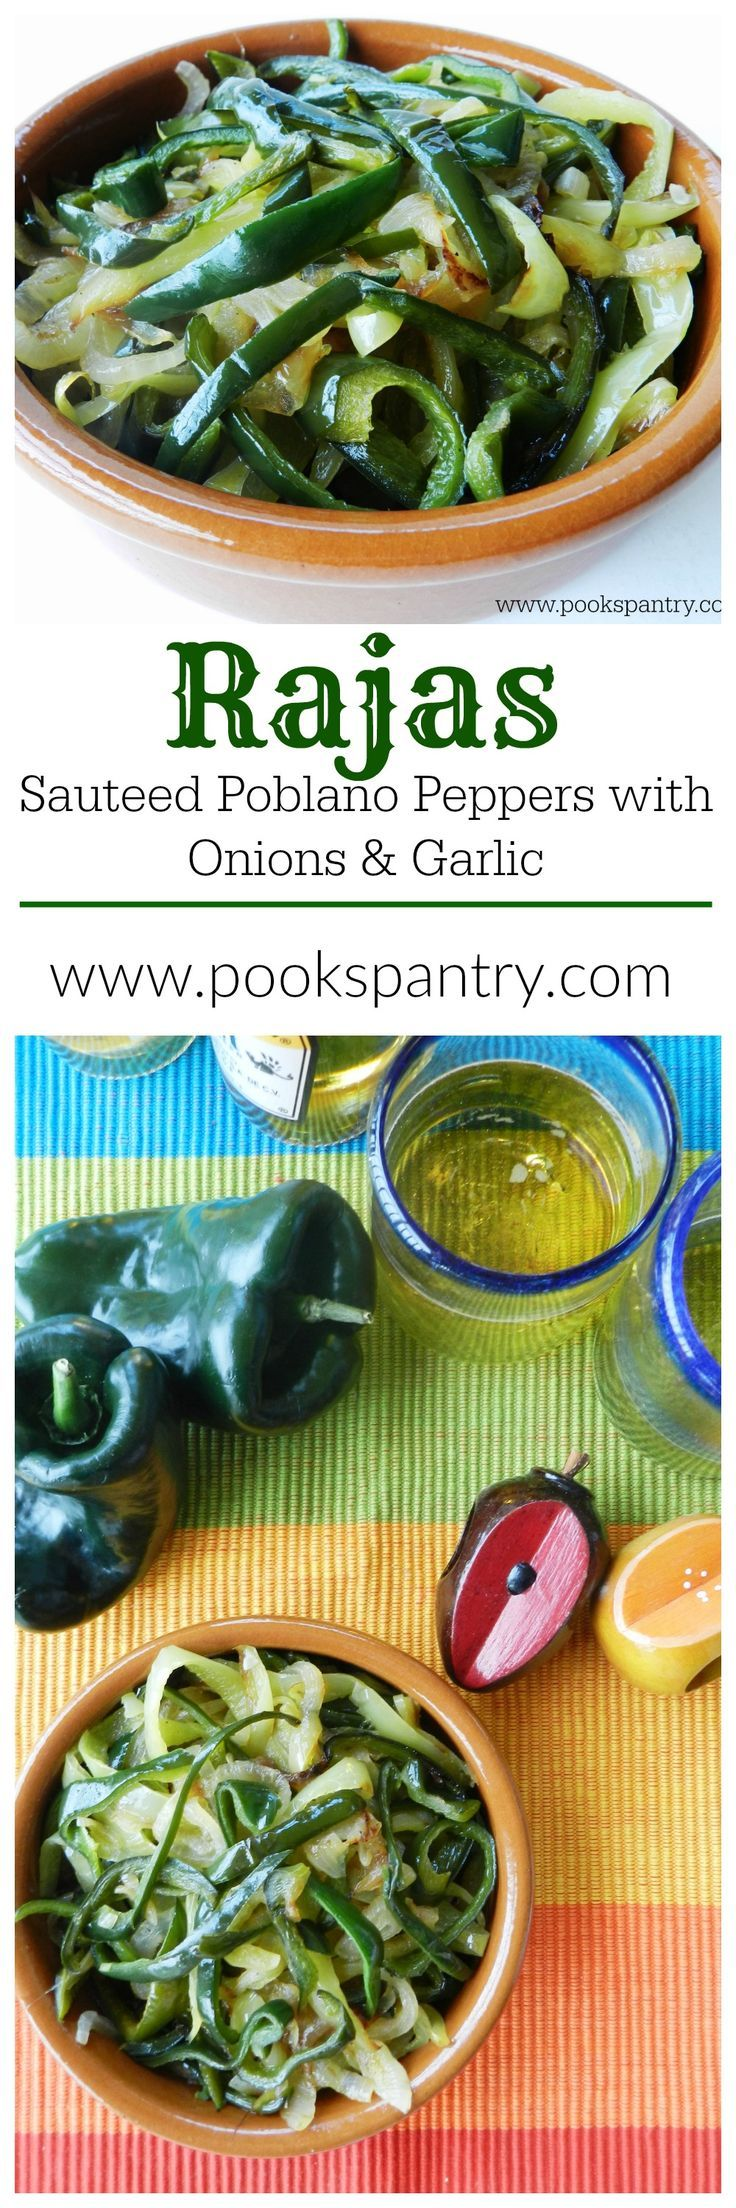 Smoky, Spicy Poblano Pepper Strips sauteed with Onions and Garlic for #SundaySupper